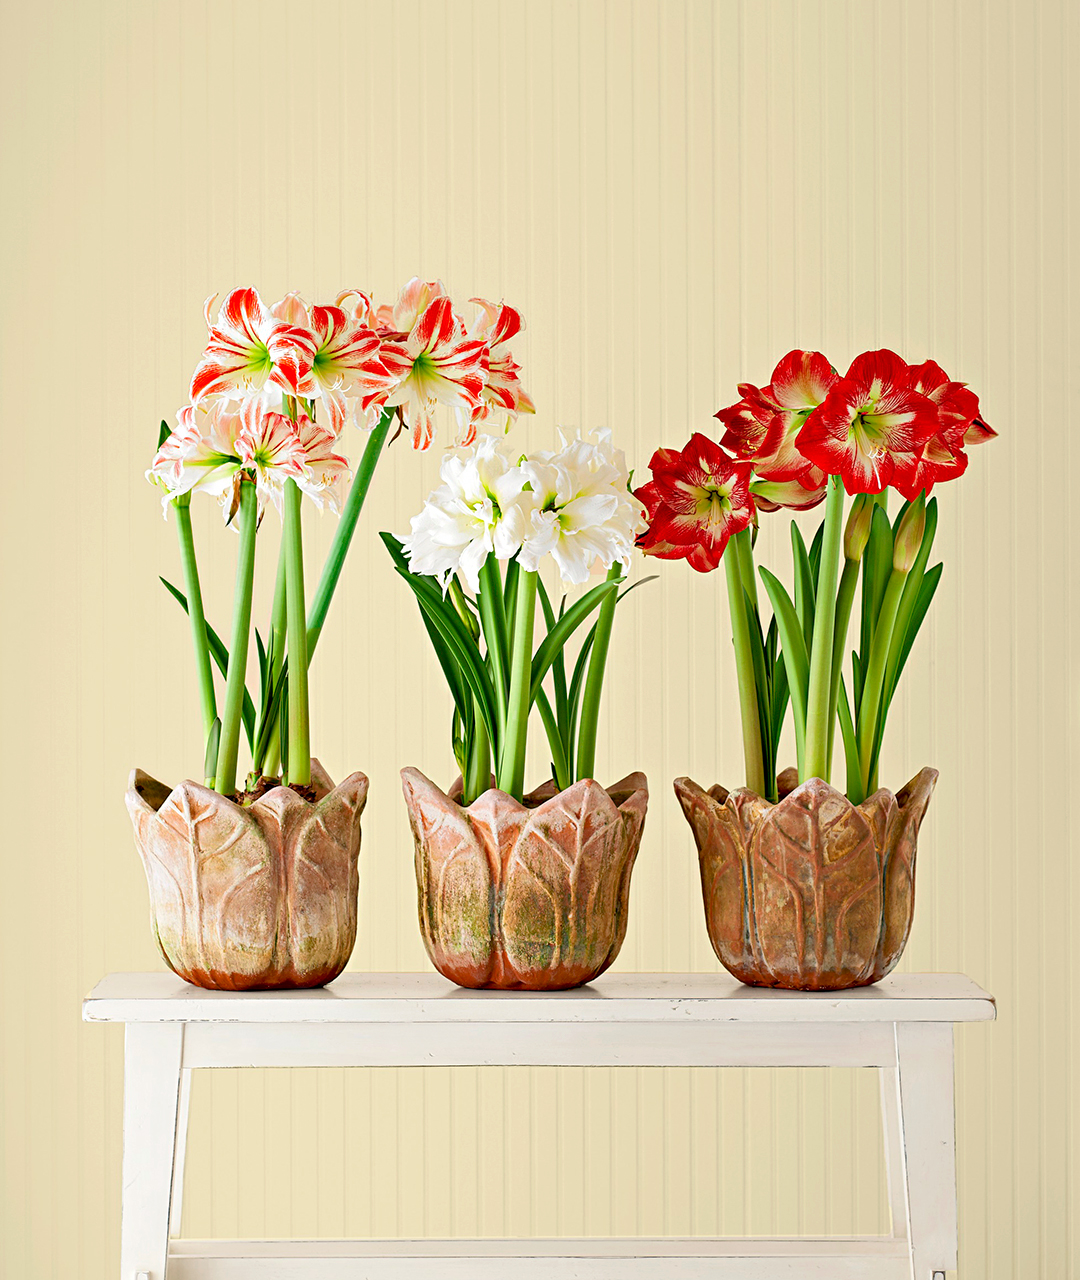 amaryllis varieties in containers